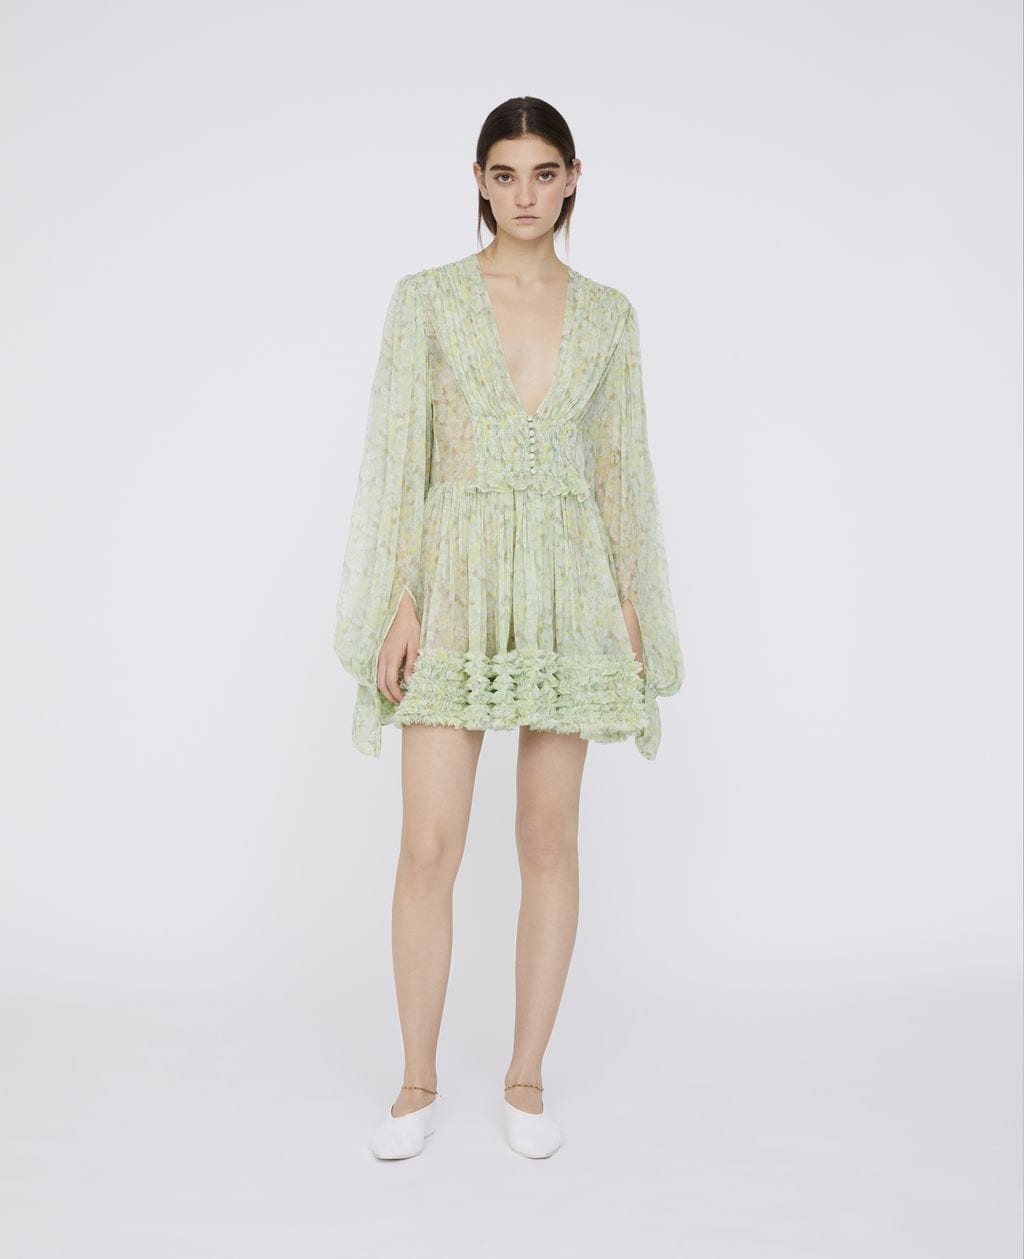 STELLAMCCARTNEY Valda Green Dress